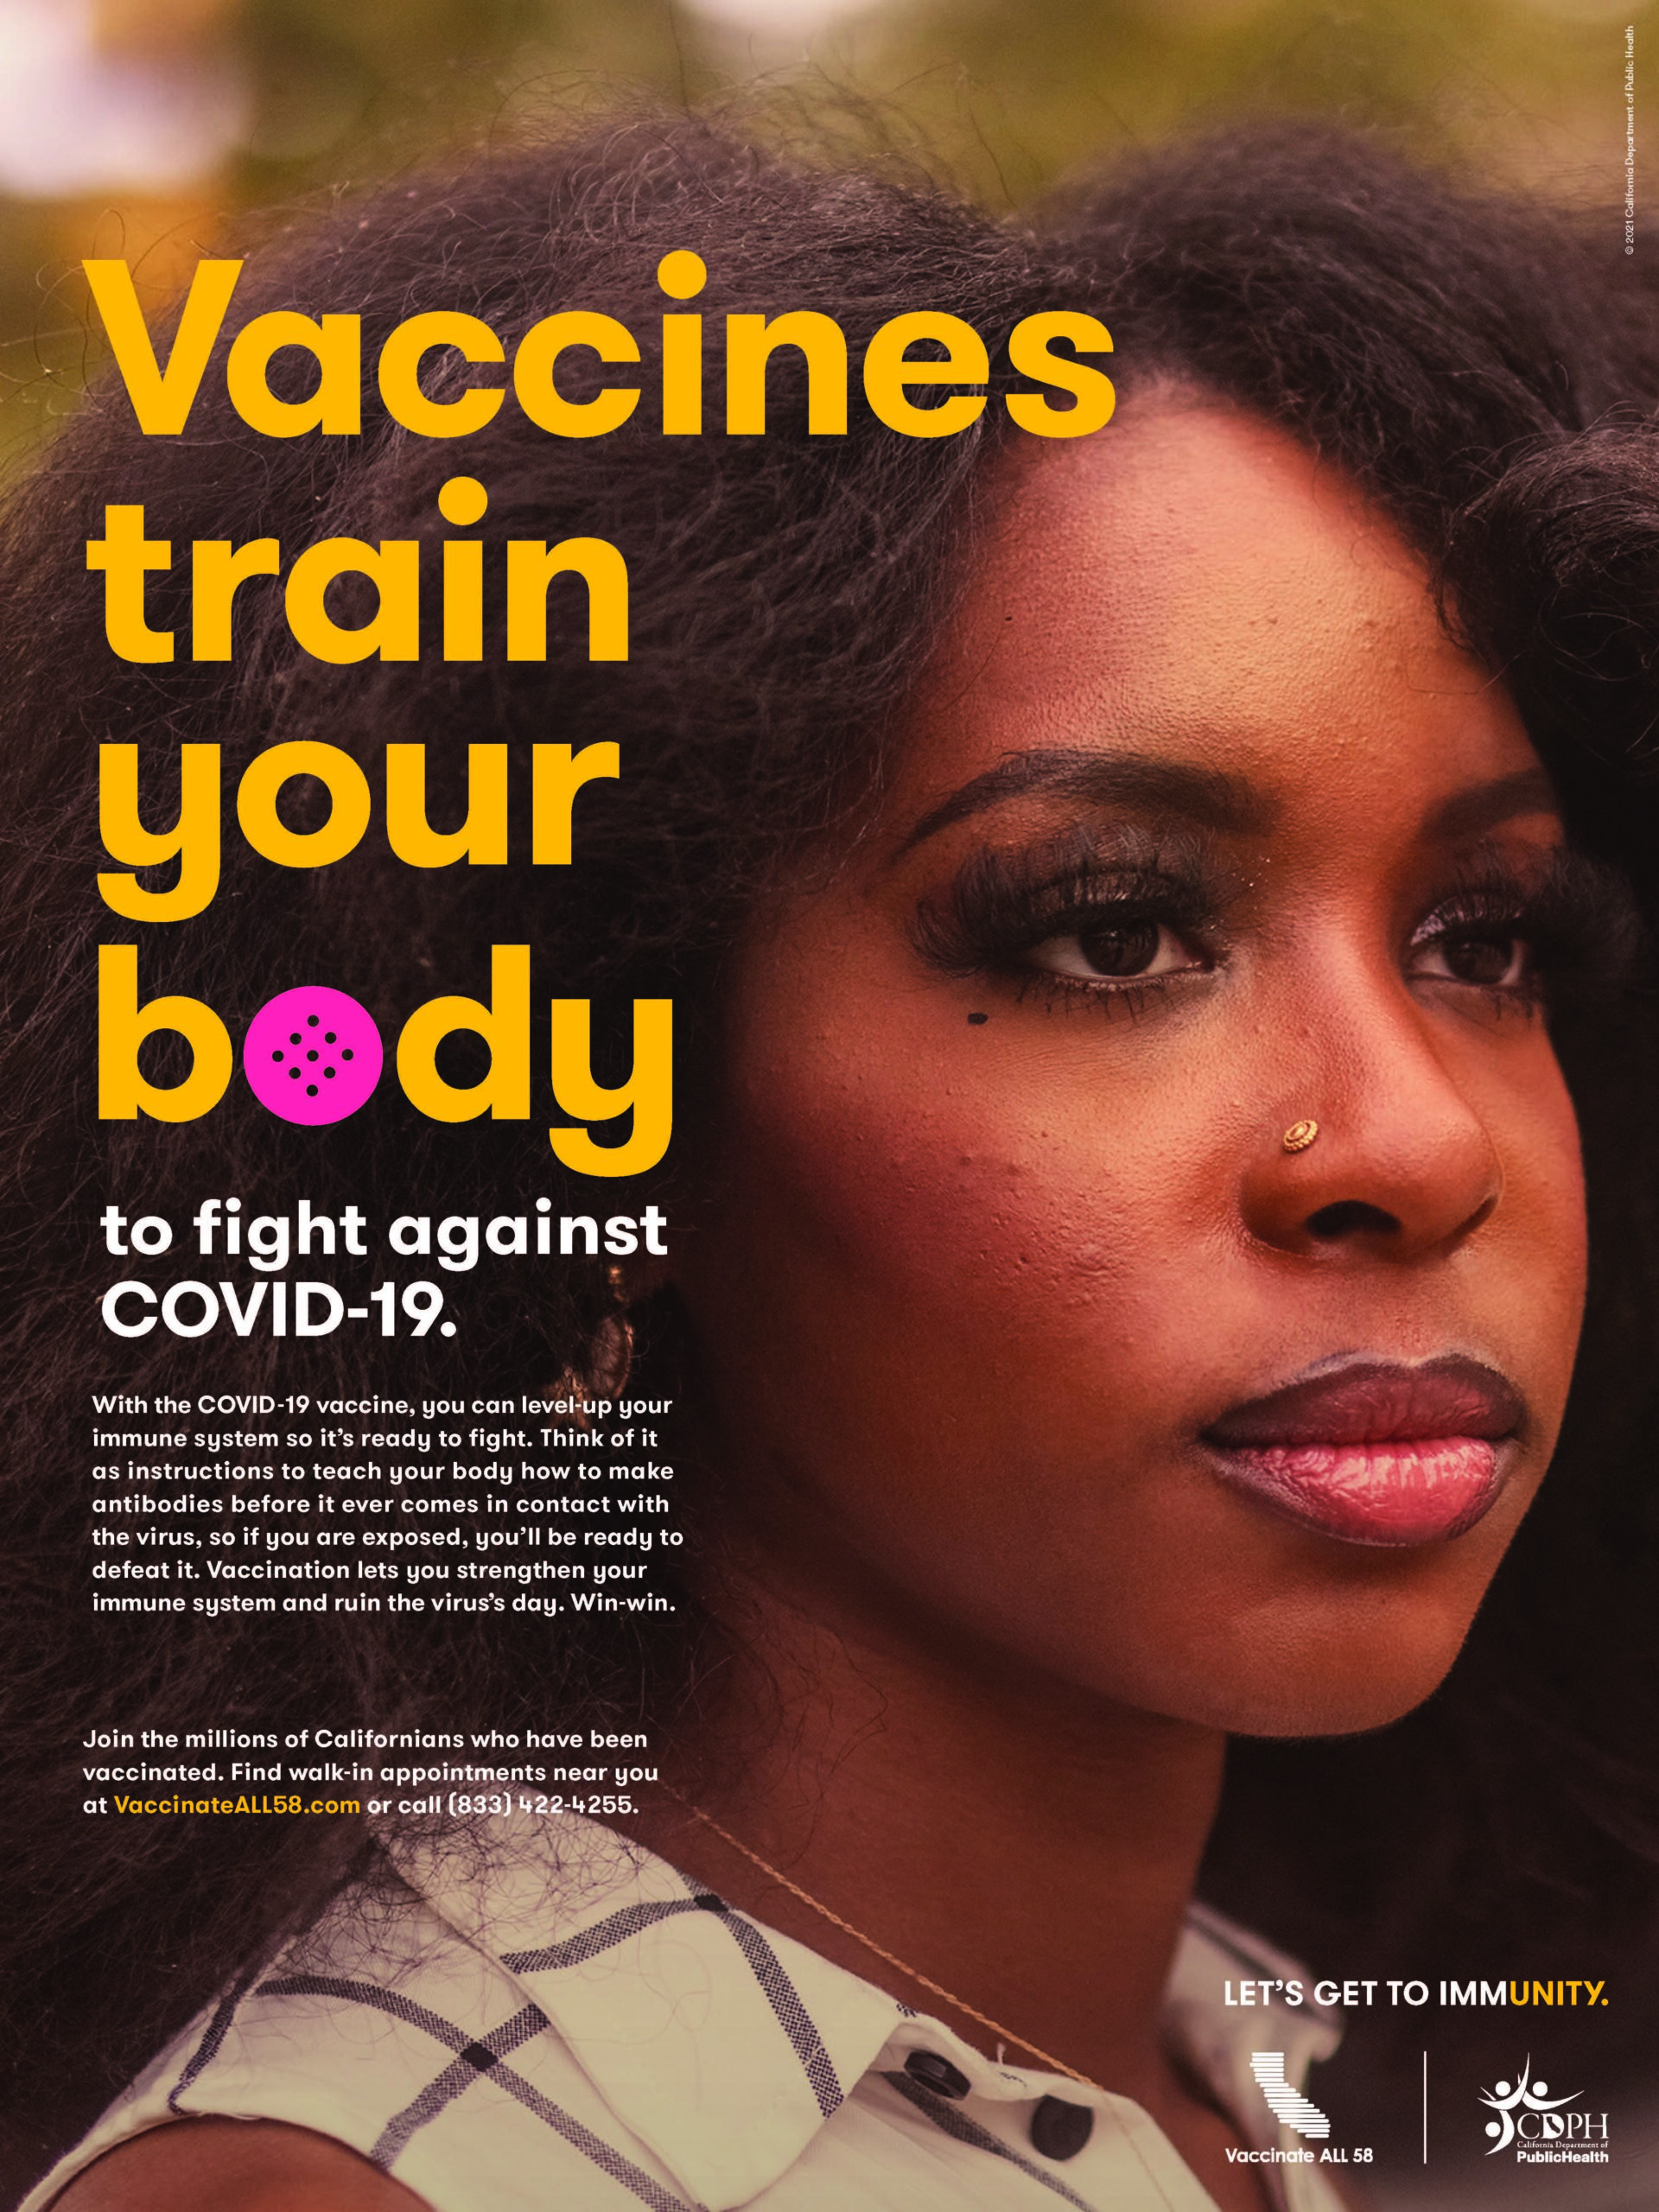 Vaccines train your body